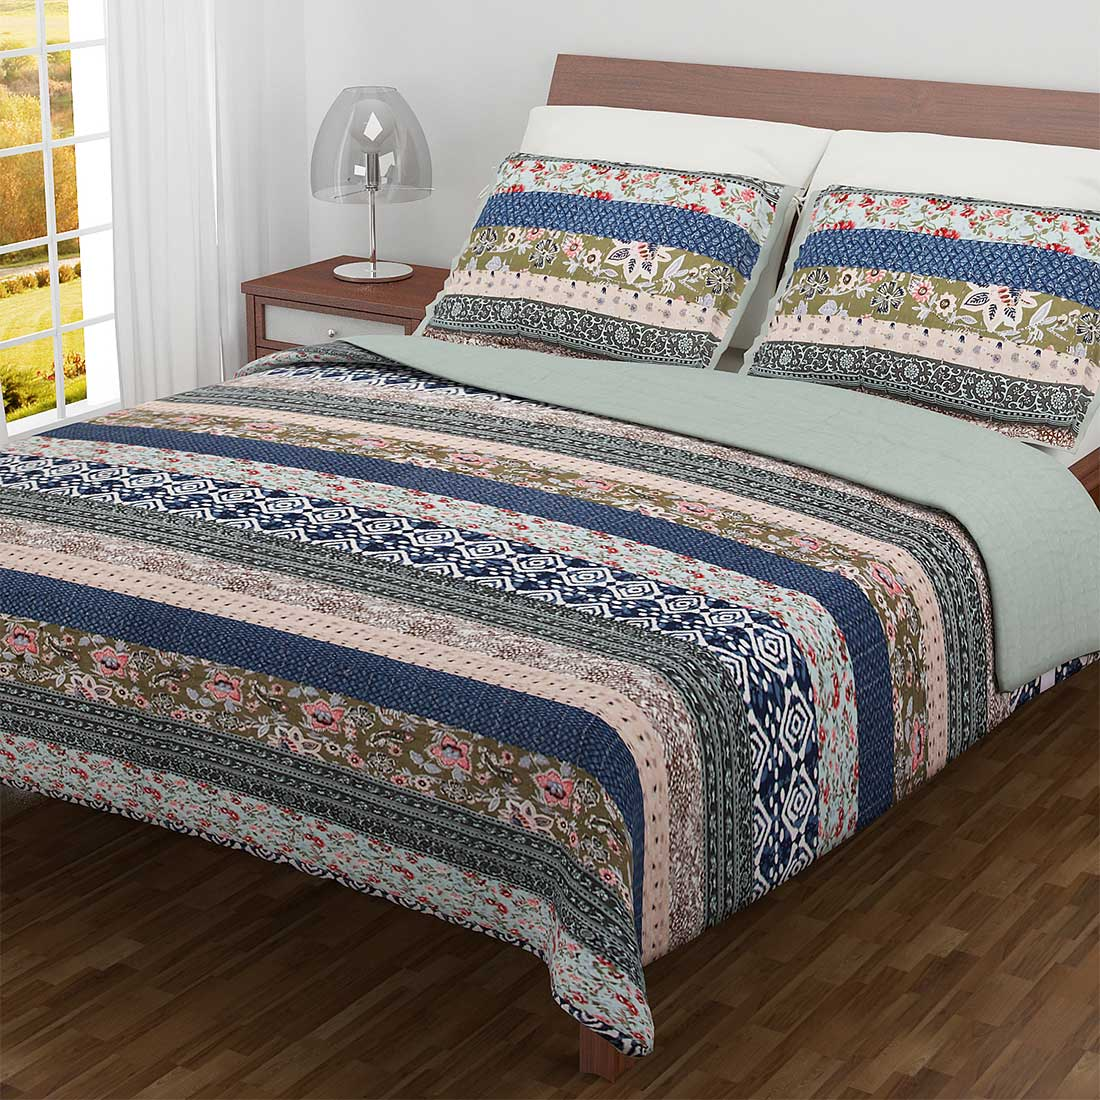 Kimberly Quilted Patchwork Quilts and Shams